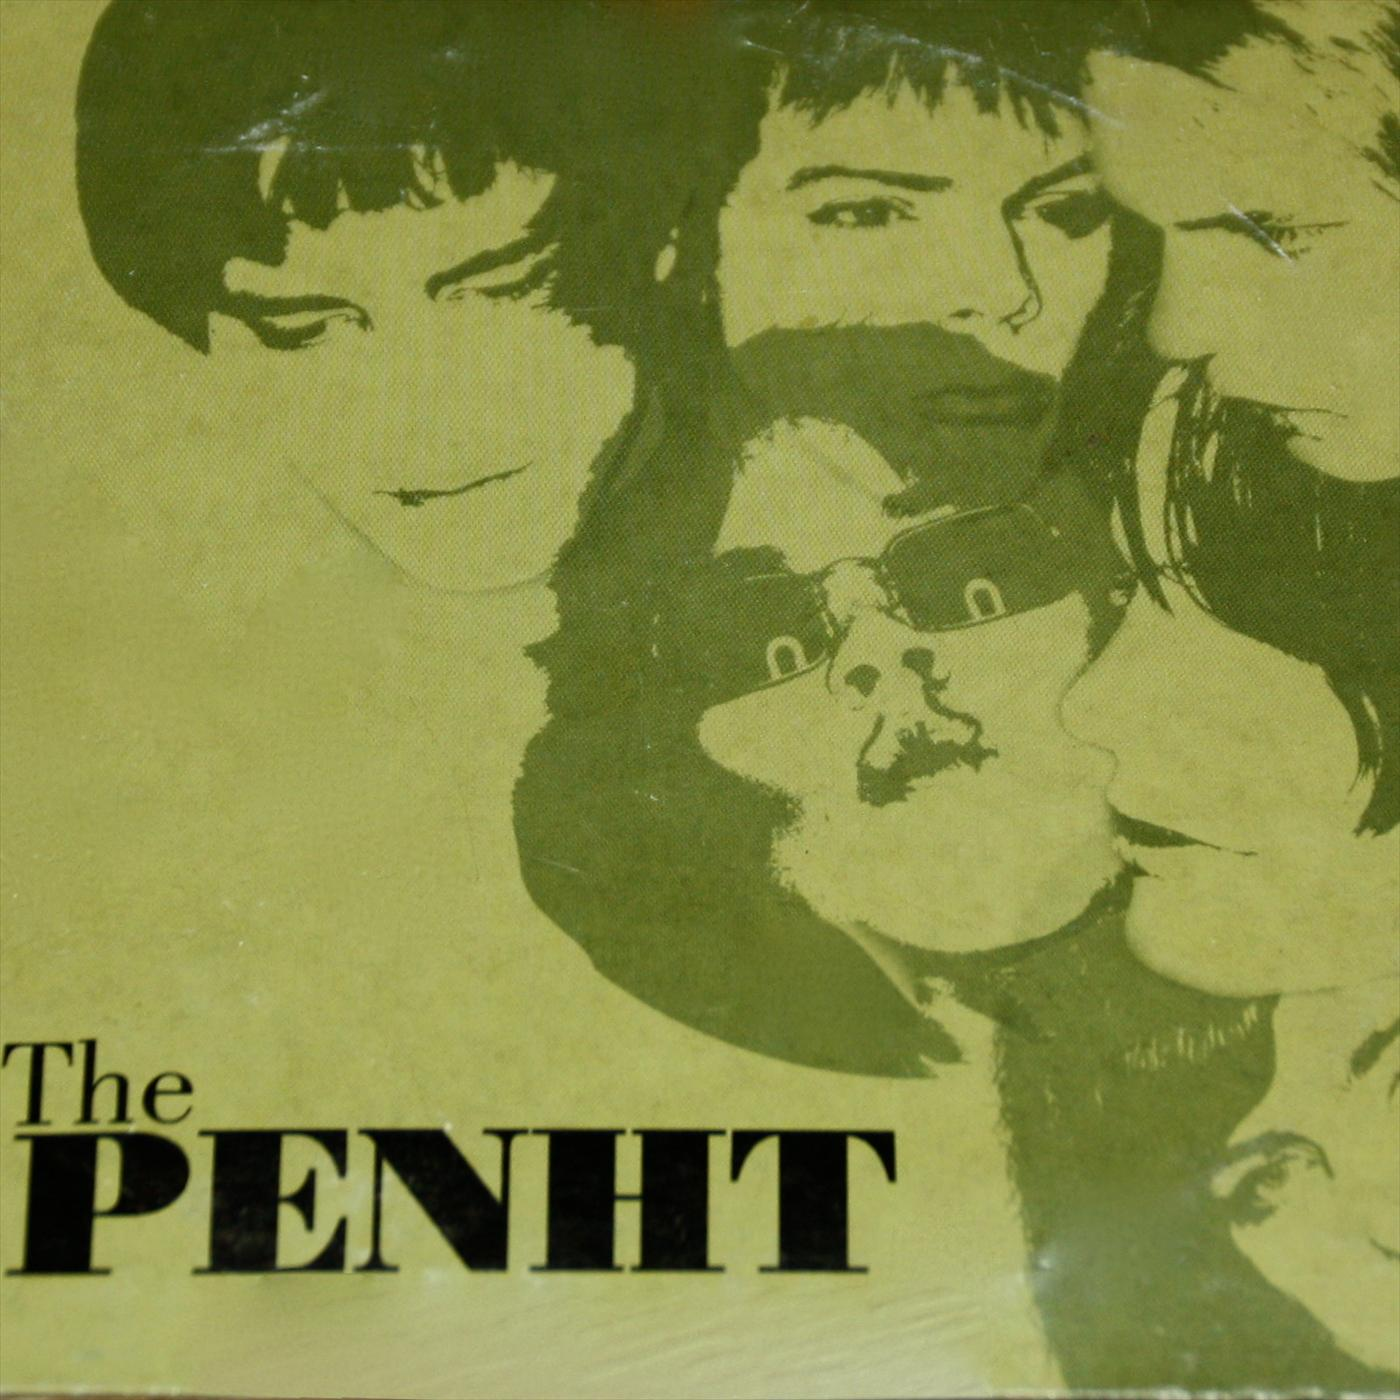 The Penht